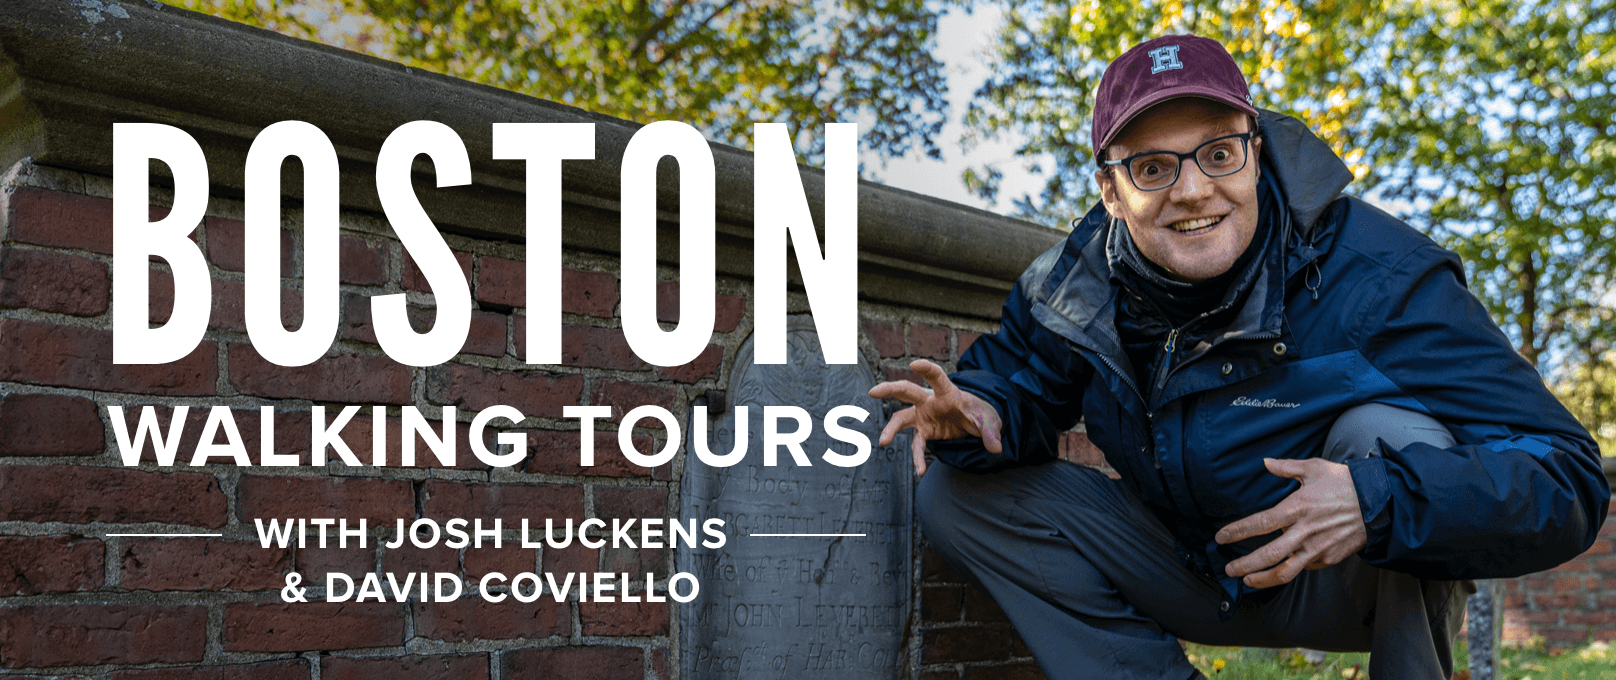 iFit Boston Walking Tours with Josh Luckens and David Coviello walking workouts